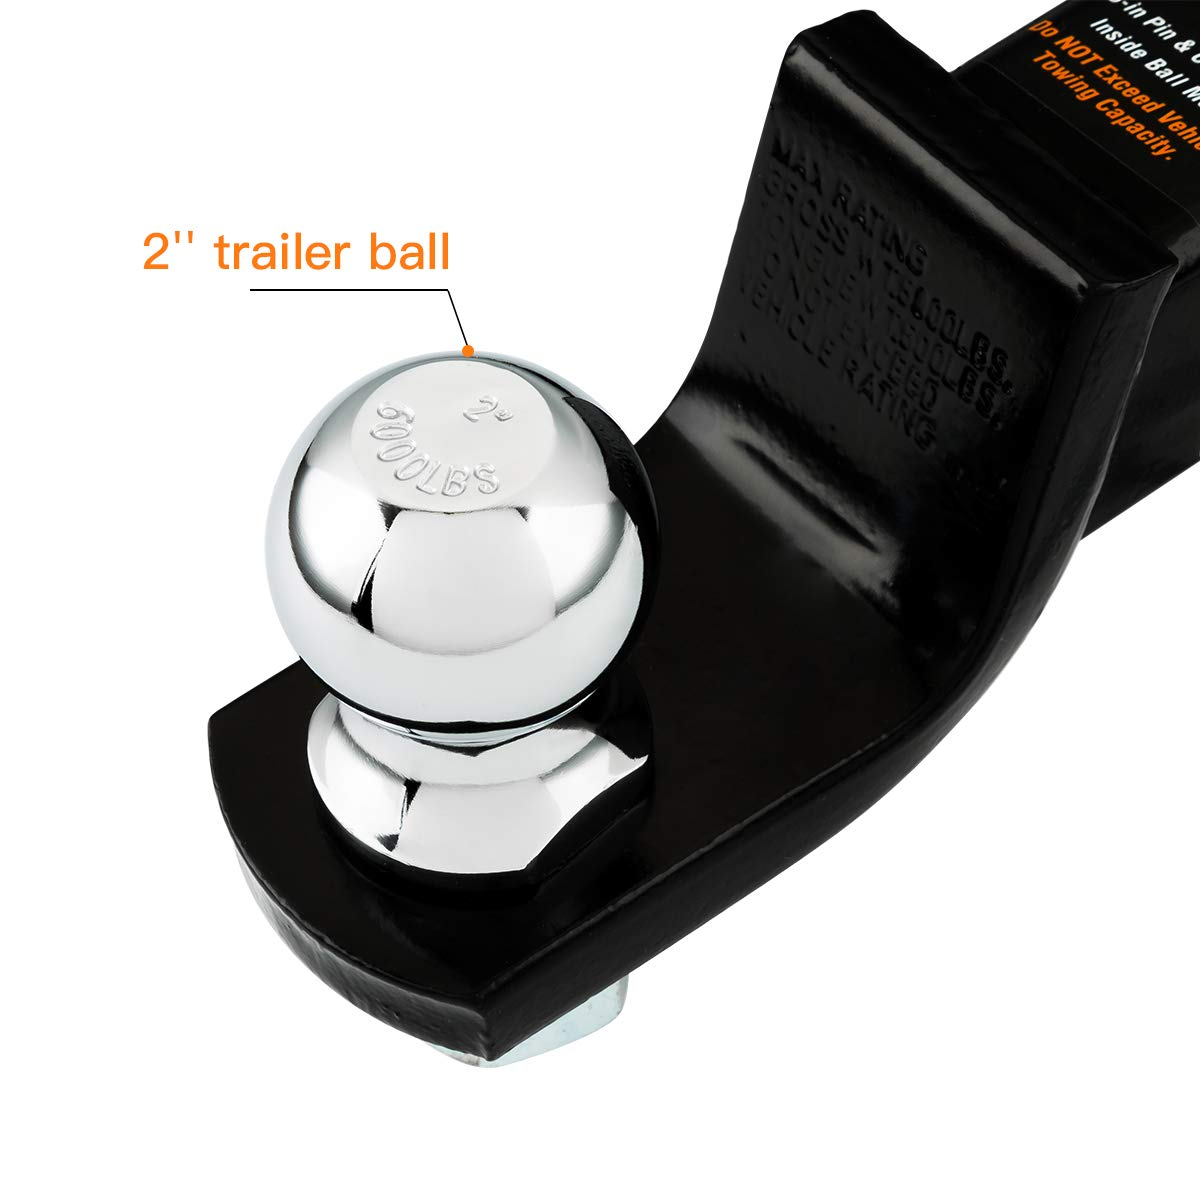 TS2003 TOPSKY Trailer Ball Mount Hitch with 2 Inch Ball Hitch Hollow Shank fits 2 Hitch Receiver Pin Black Ball 6,000lbs GTW